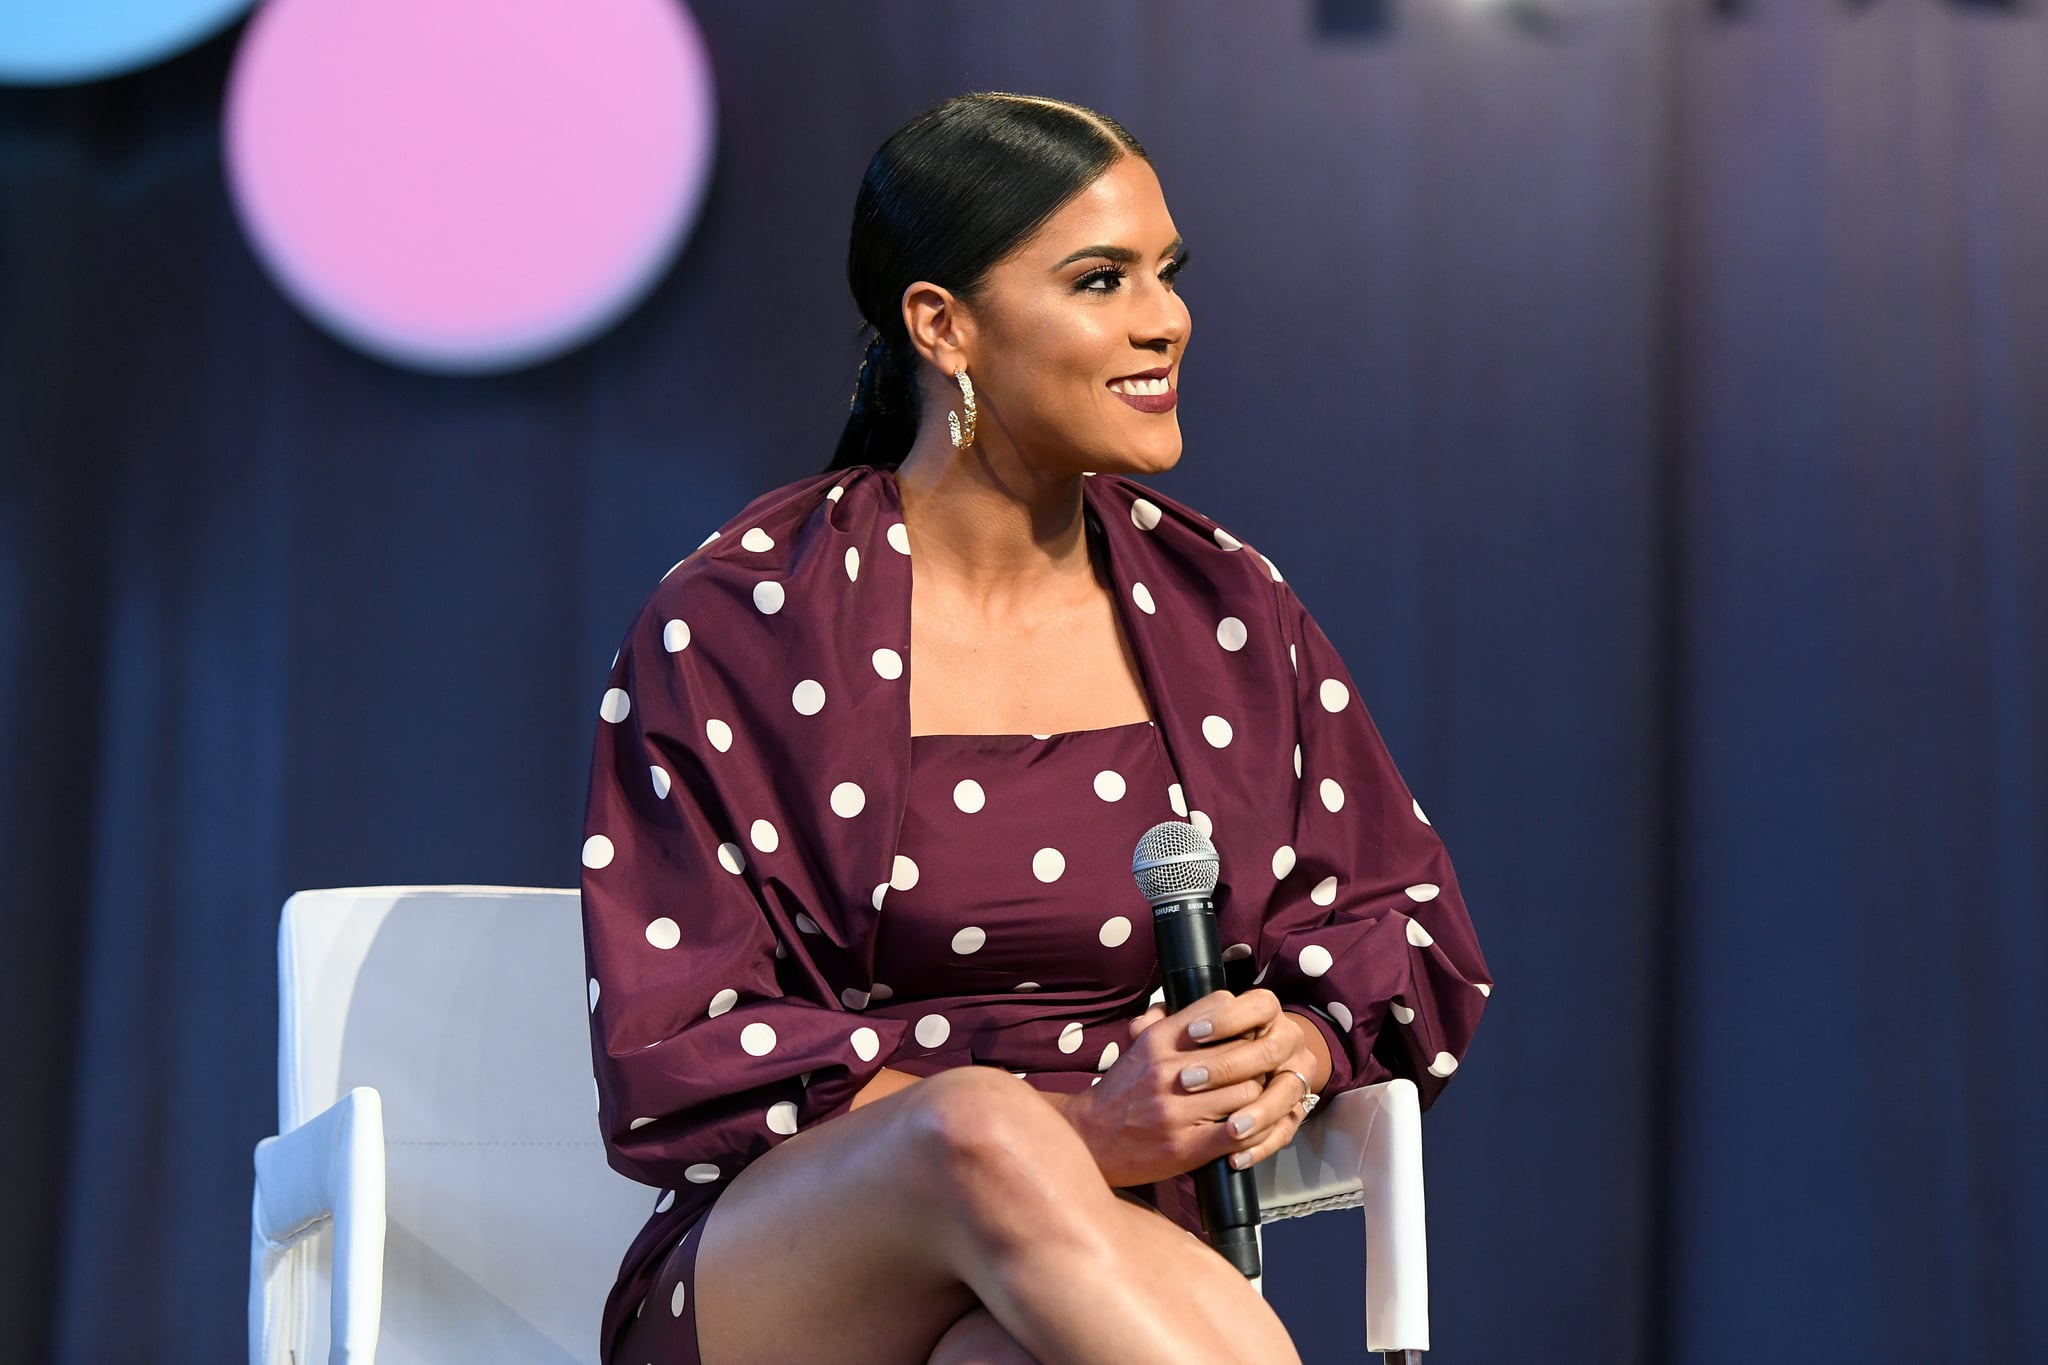 NEW YORK, NEW YORK - OCTOBER 05: Francisca Lachapel speaks on stage during People en Español 6th Annual Festival To Celebrate Hispanic Heritage Month - Day 1 on October 05, 2019 in New York City. (Photo by Jared Siskin/Getty Images for Festival People en Español)